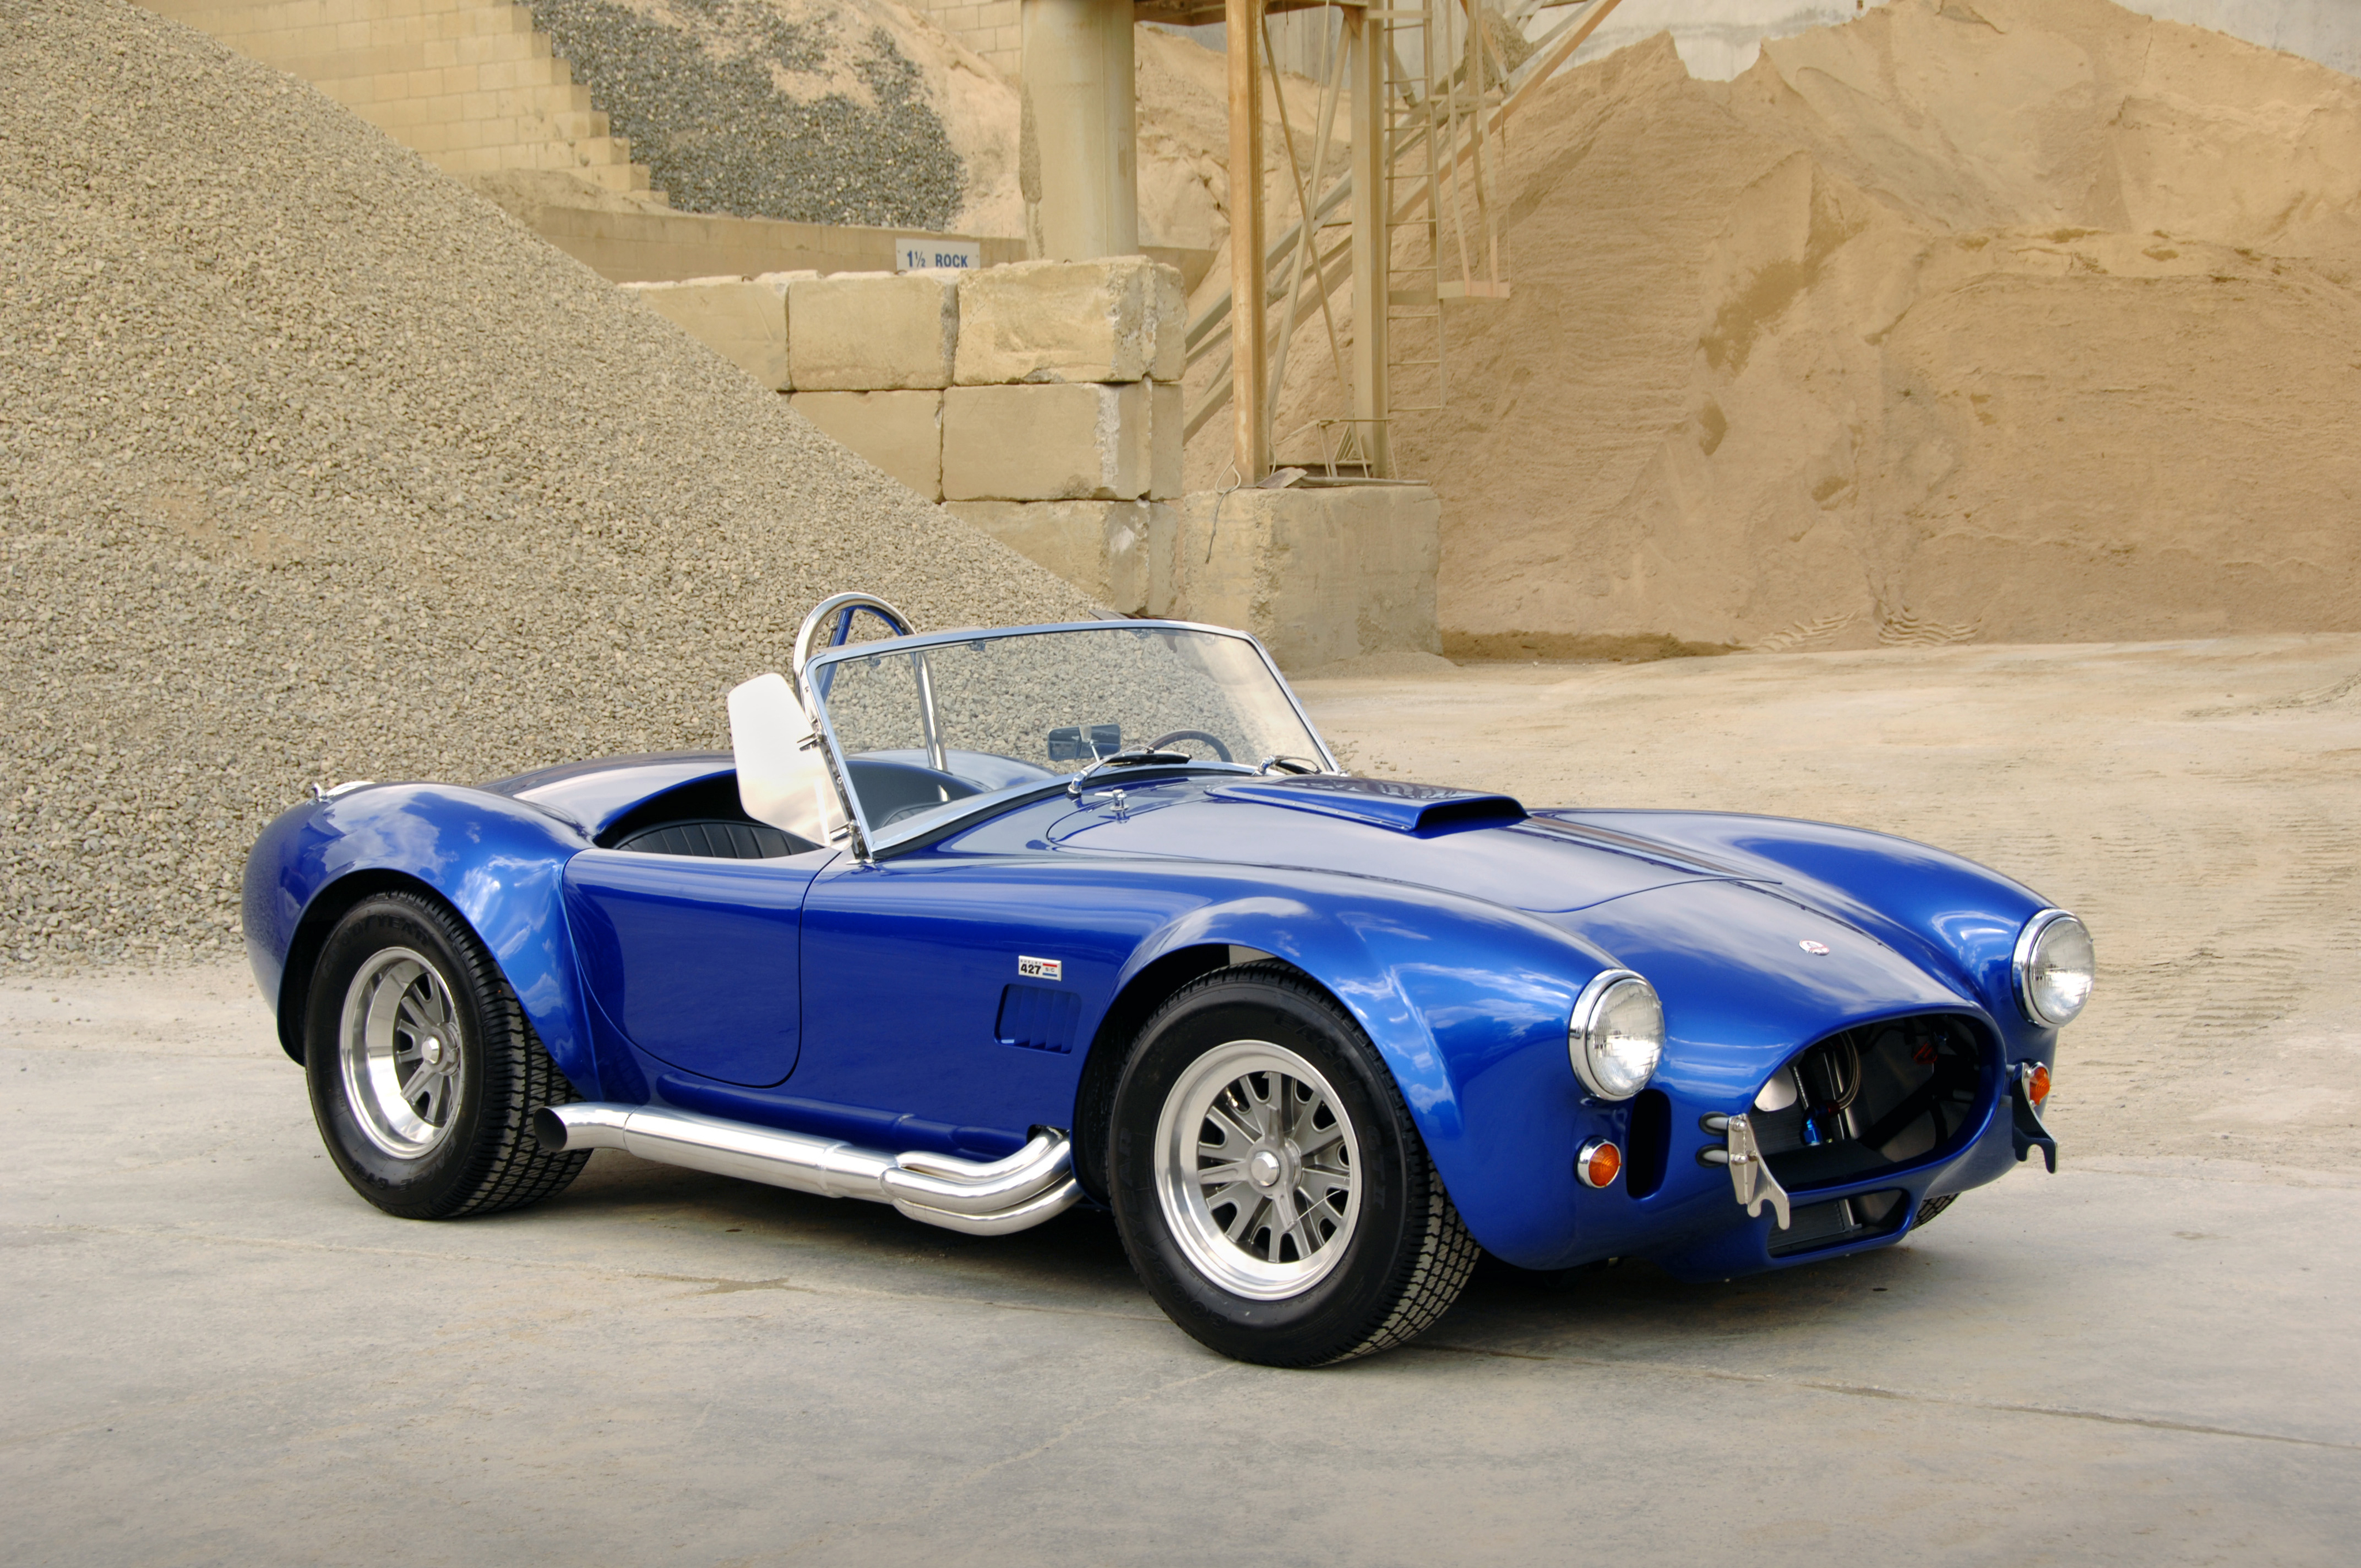 67870 download wallpaper Cars, Ford, Shelby, Cobra, 427, 1963, Csx 4000 screensavers and pictures for free